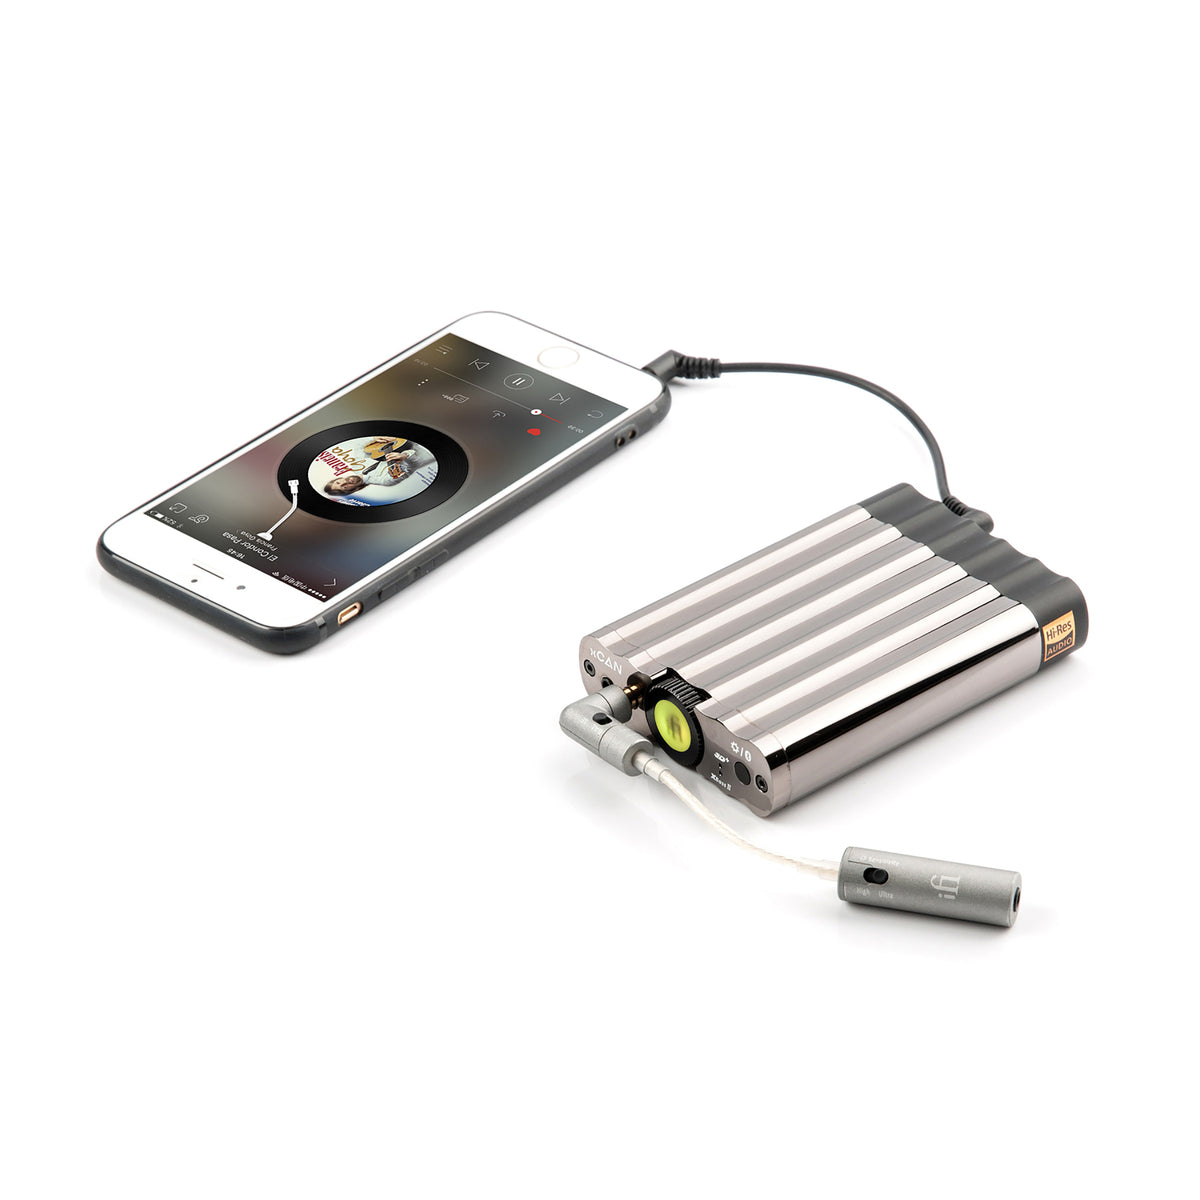 iFi Audio: xCAN Portable Headphone Amplifier w/Bluetooth